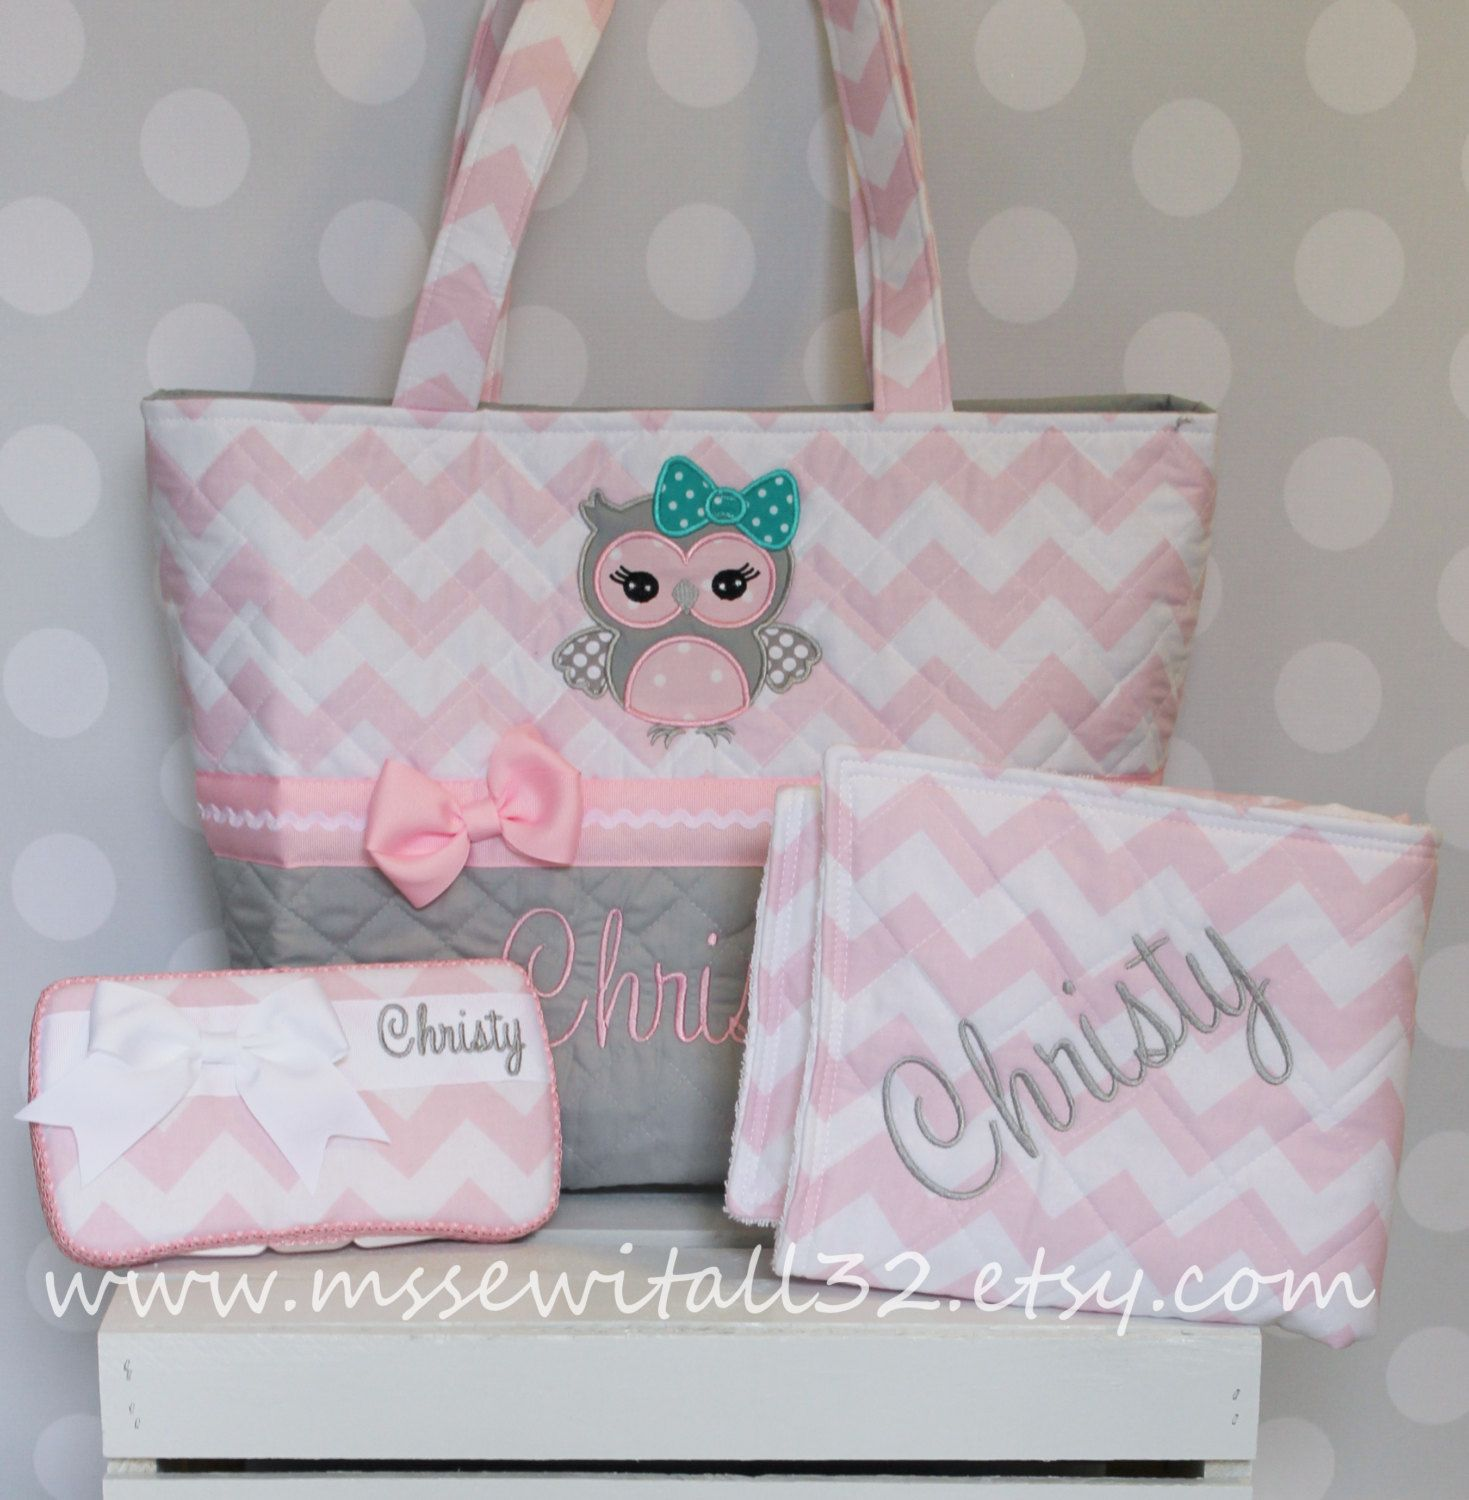 Xl Quilted Owl Lique Pink Chevron Zig Zag Diaper Bag Set Personalized